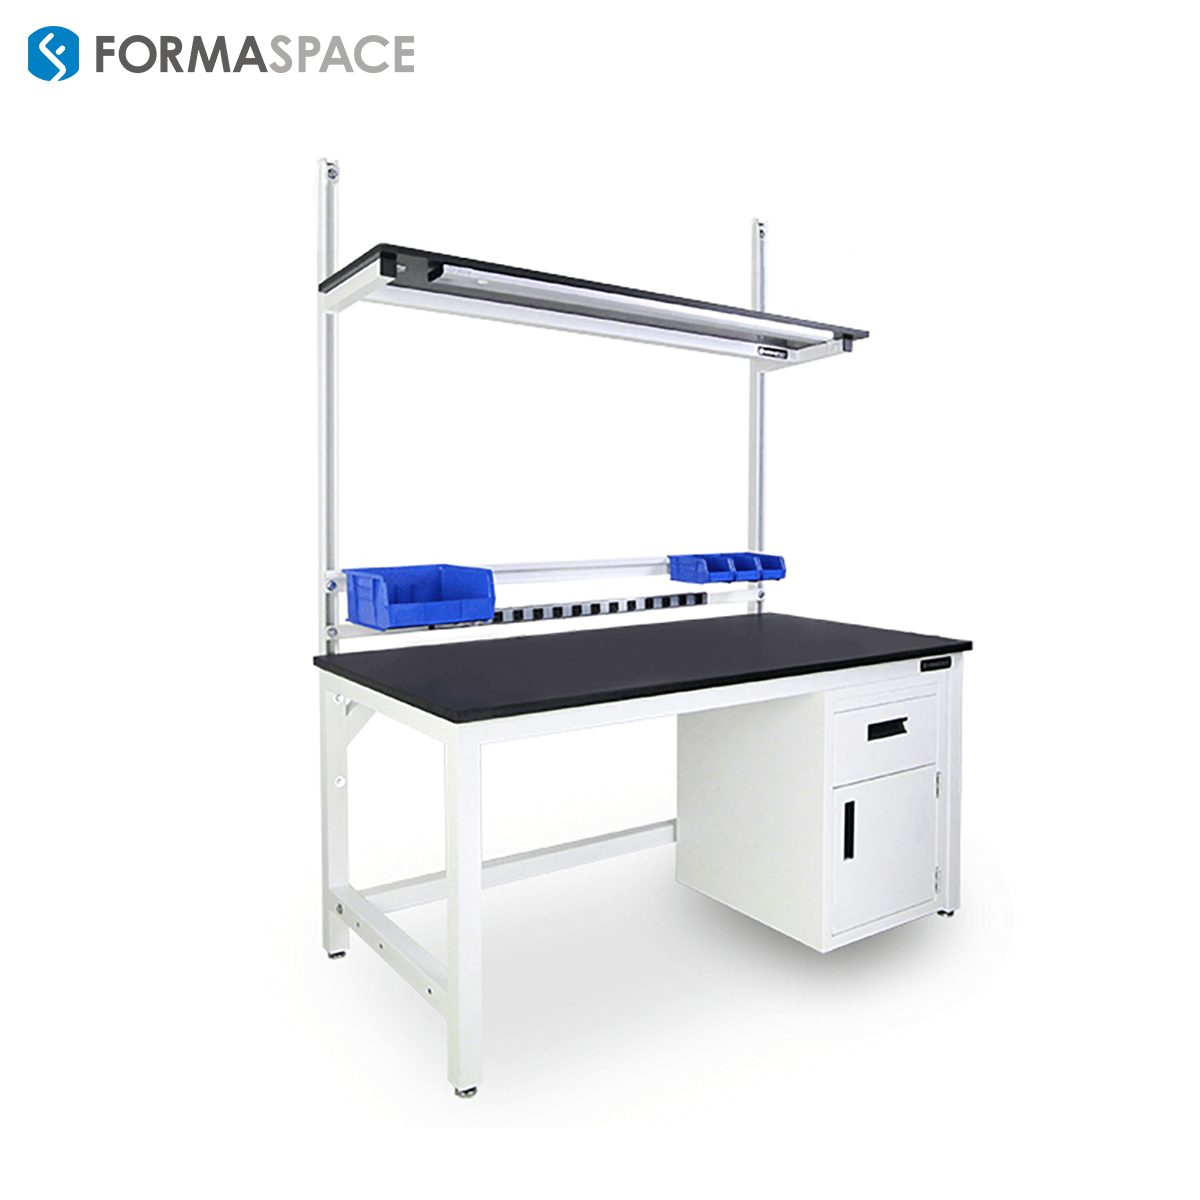 Formaspace Standard Benchmarx with Epoxy Top